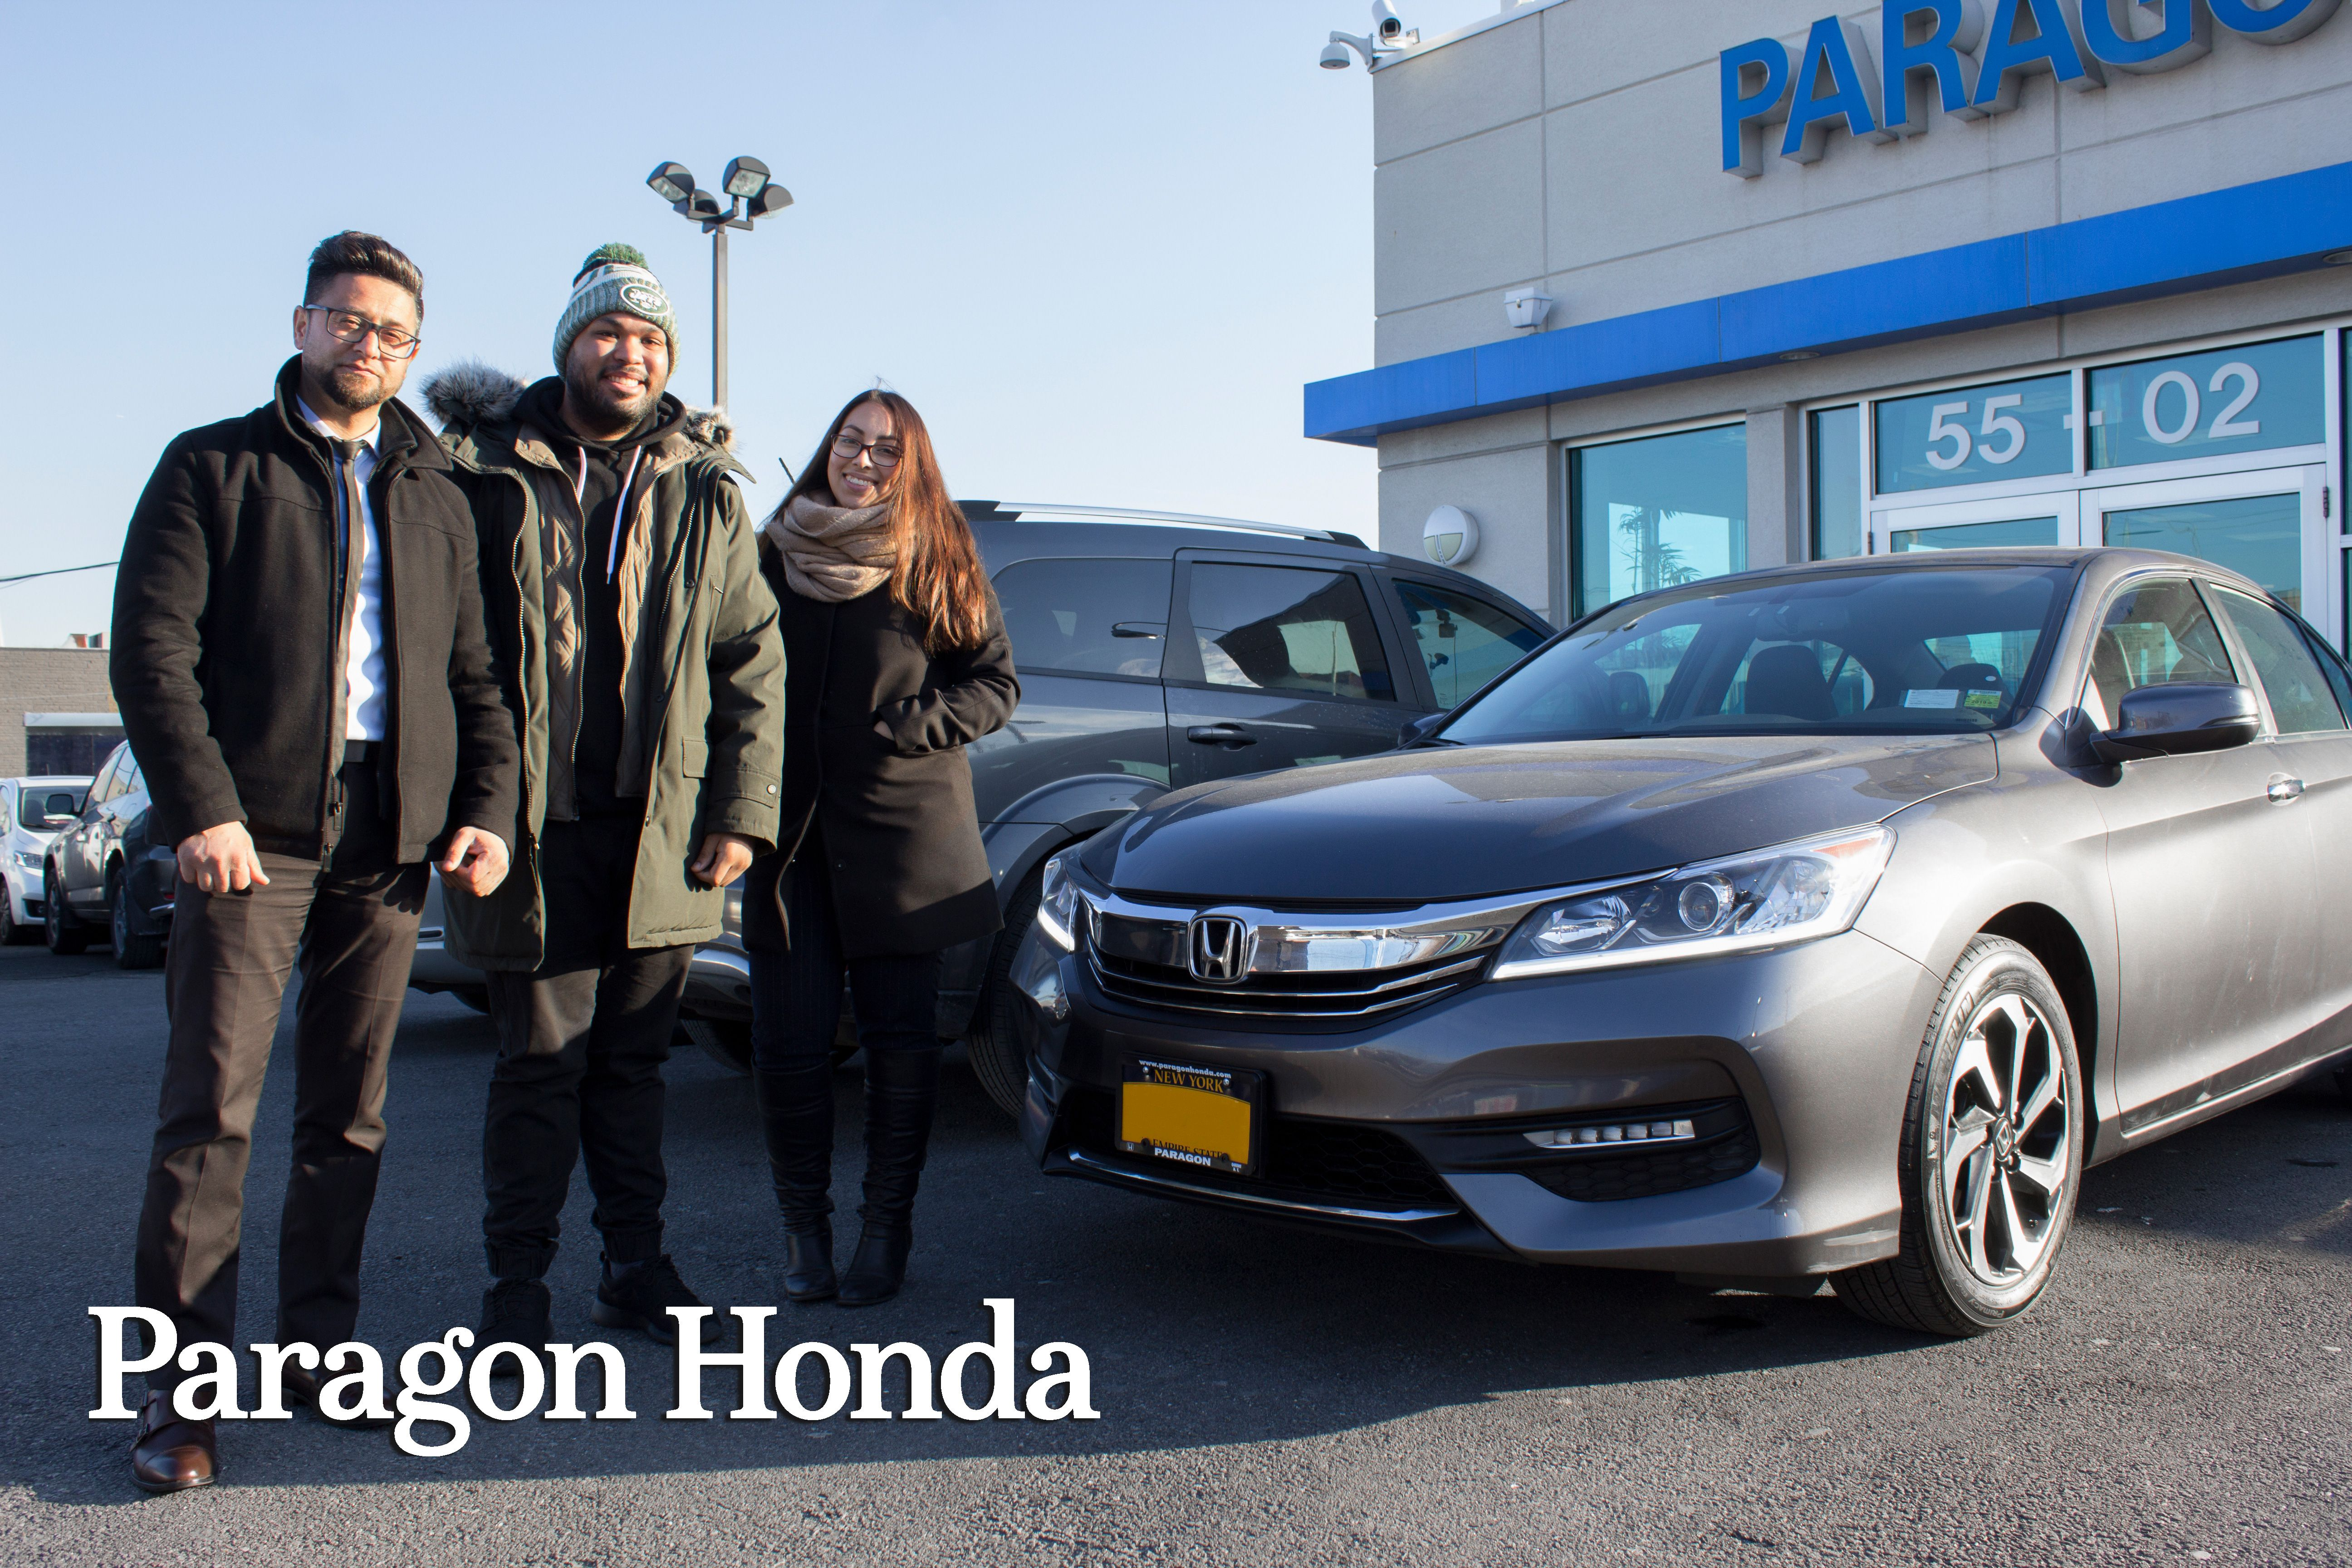 Enjoy Your New 2017 #HondaAccord, Jordan! Another Happy Customer With  Sultan Haseq At #paragonhonda